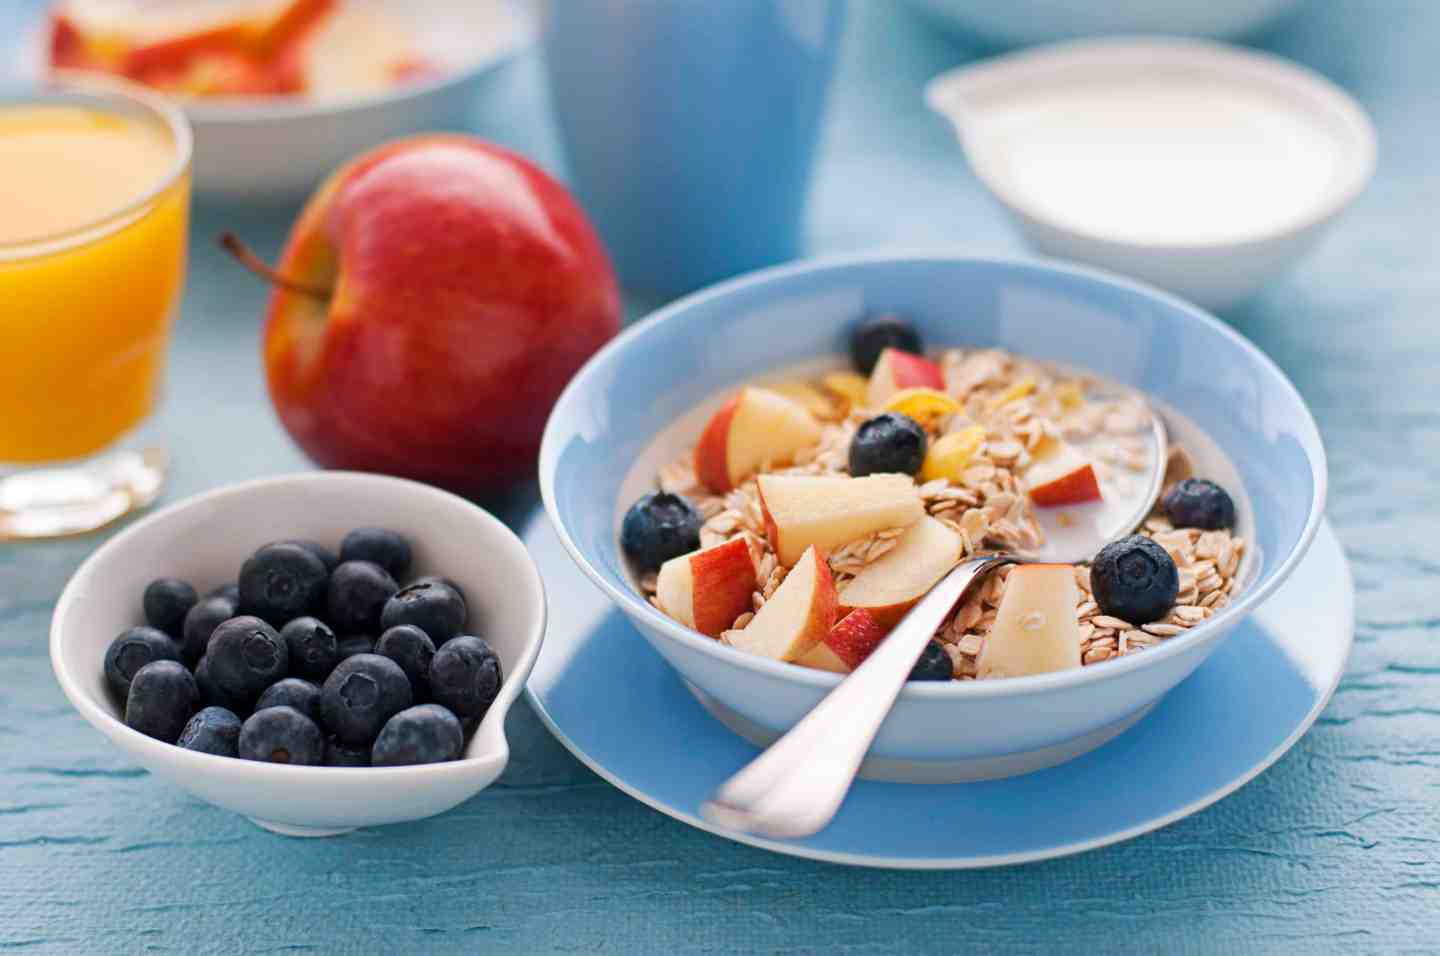 healthy breakfast of apple, blueberries and a bowl of muesli with both in on a table